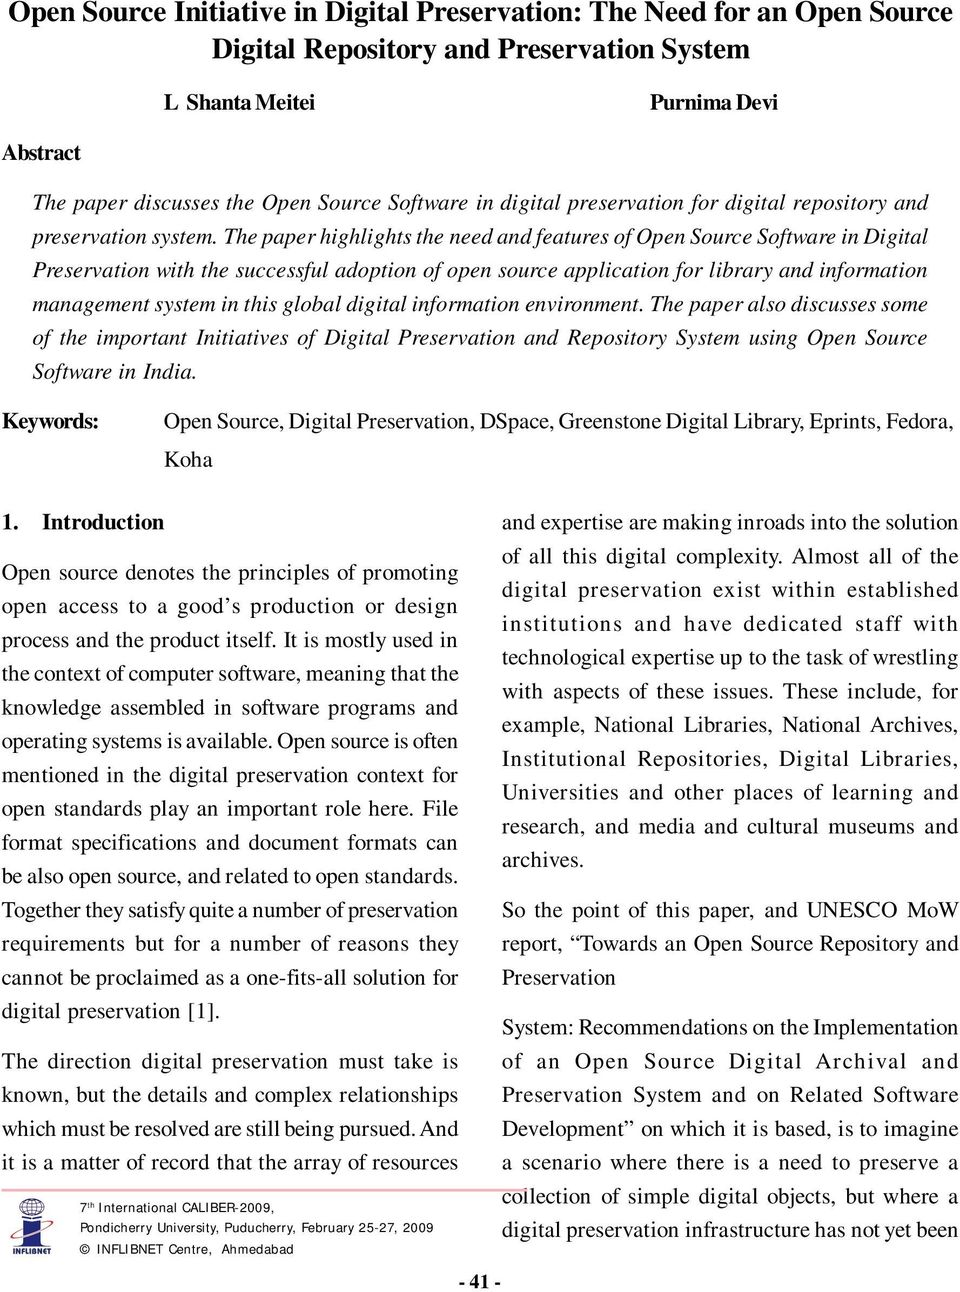 The paper highlights the need and features of Open Source Software in Digital Preservation with the successful adoption of open source application for library and information management system in